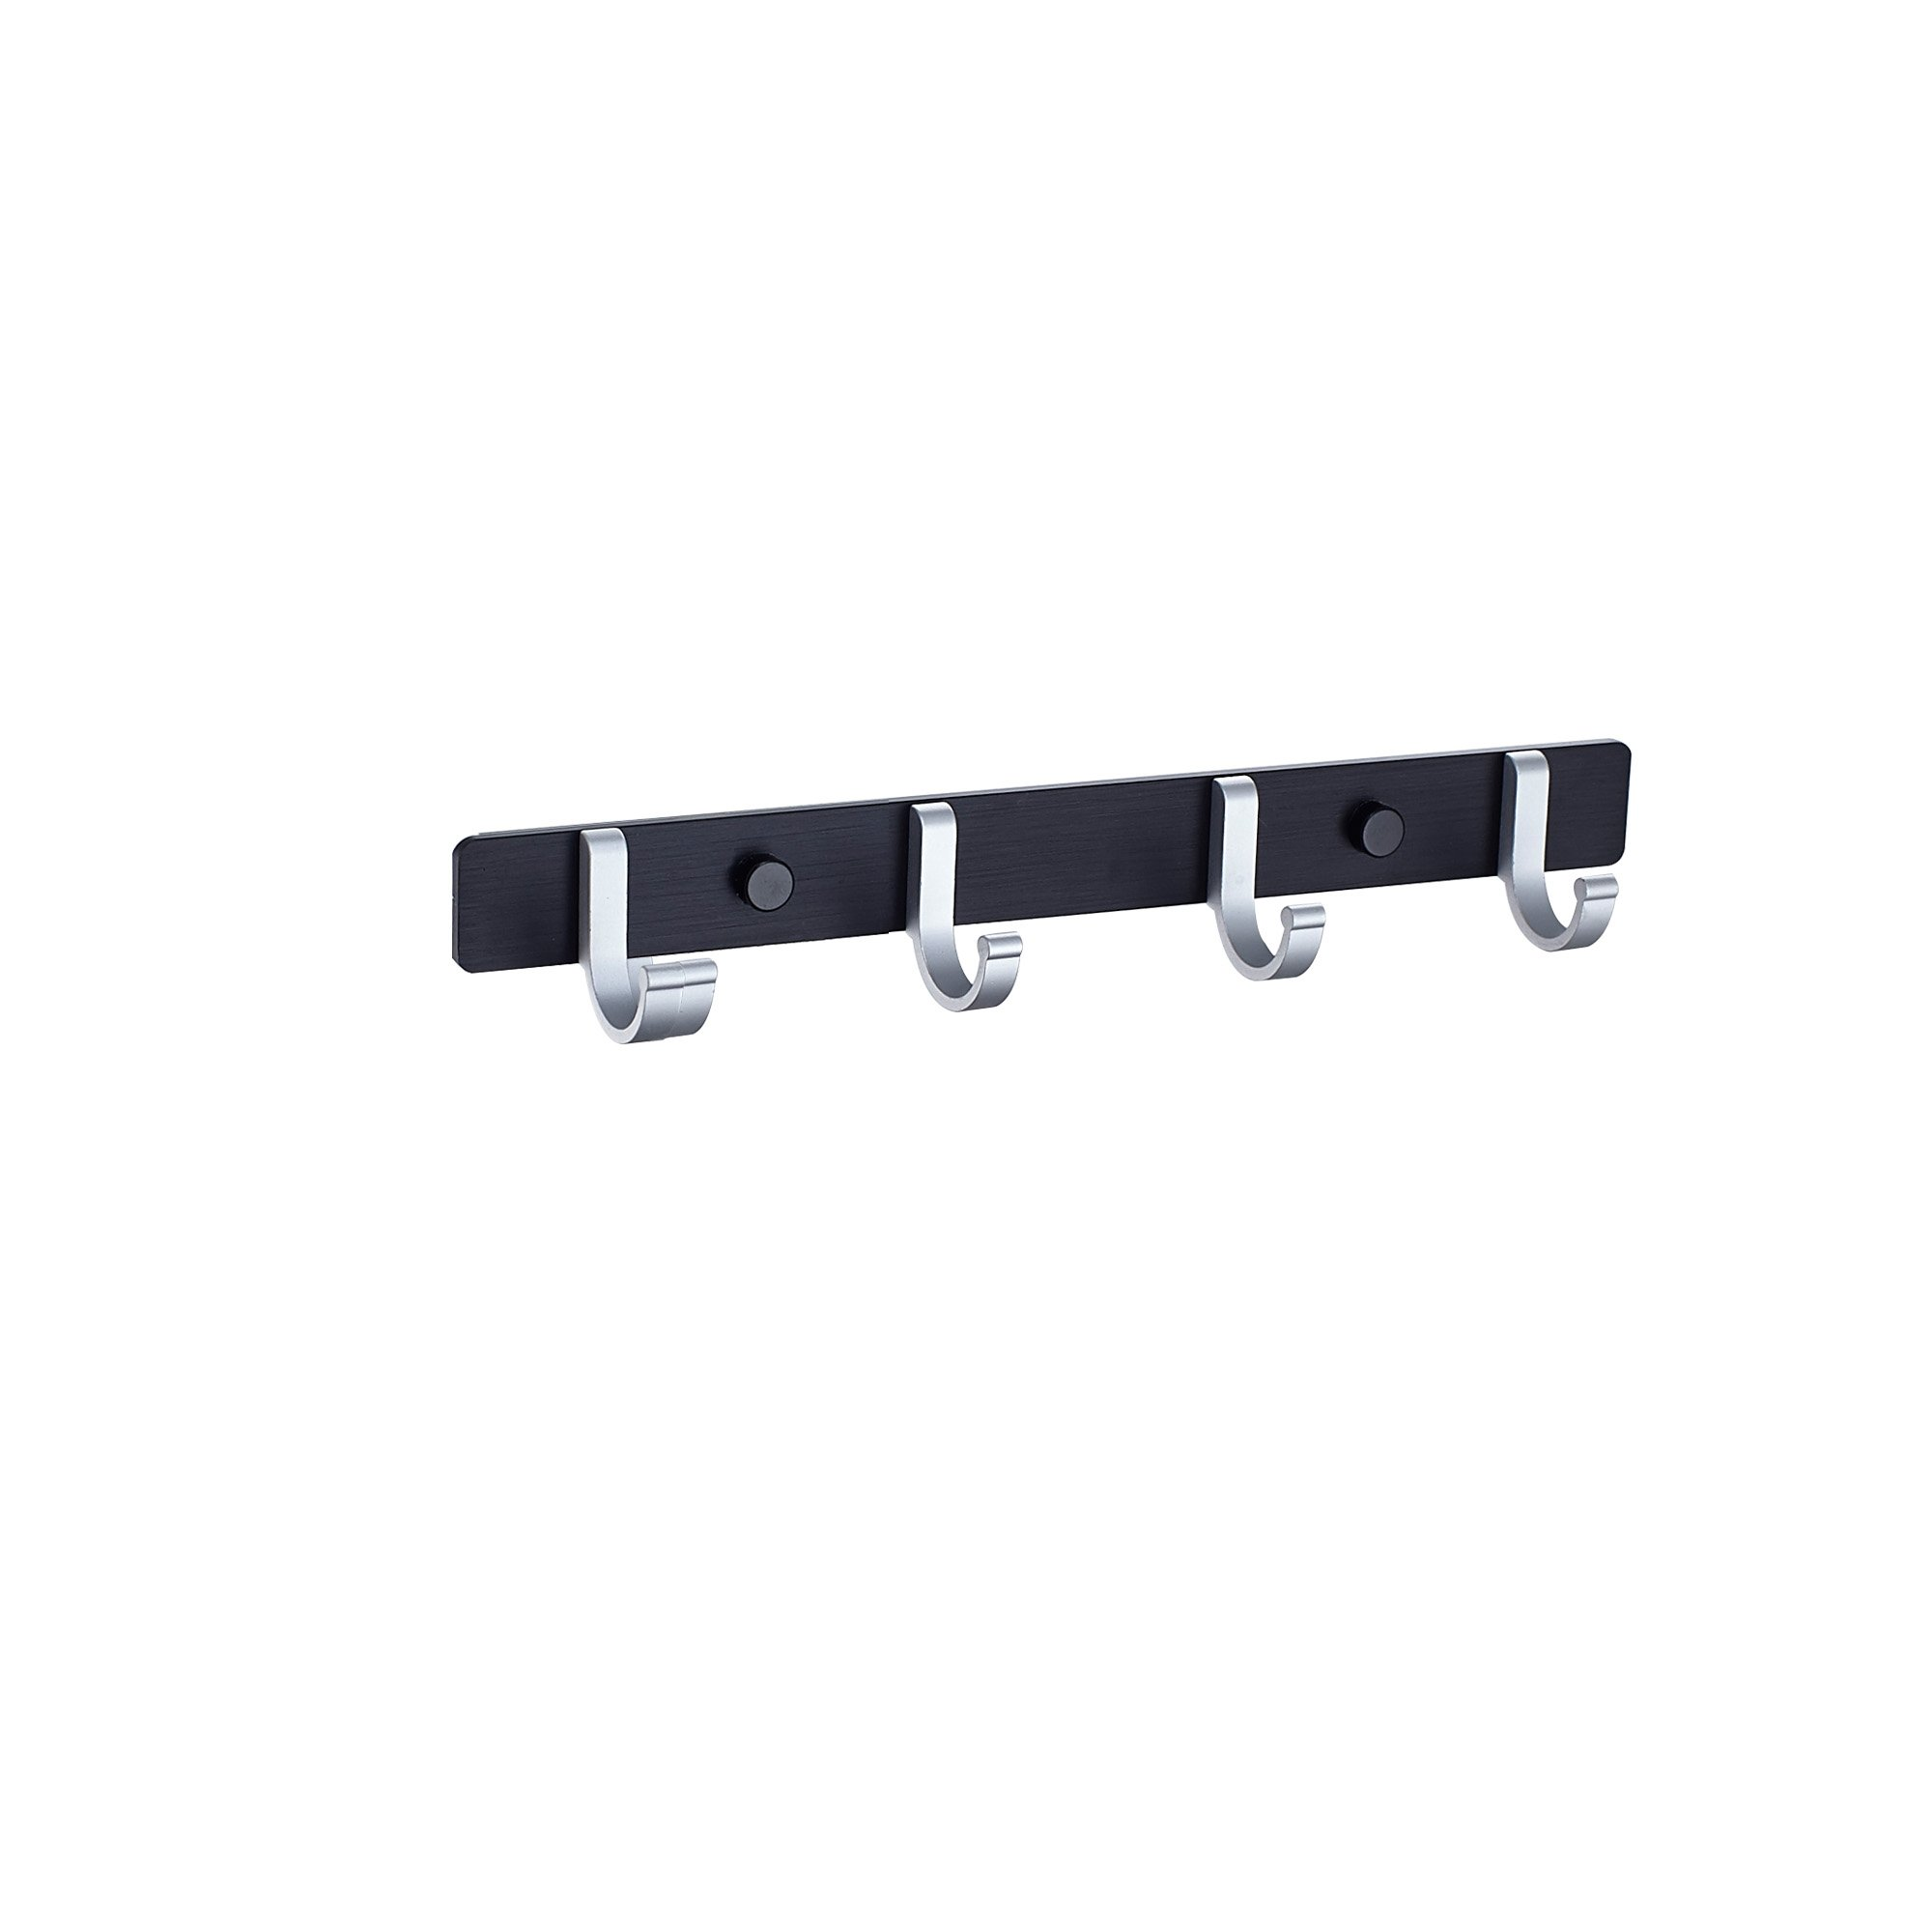 HOME SHOW Bathroom Towel Rail/Rack with 4 Hooks Wall Mount Aluminum Alloy, Black and Silver G08 0090